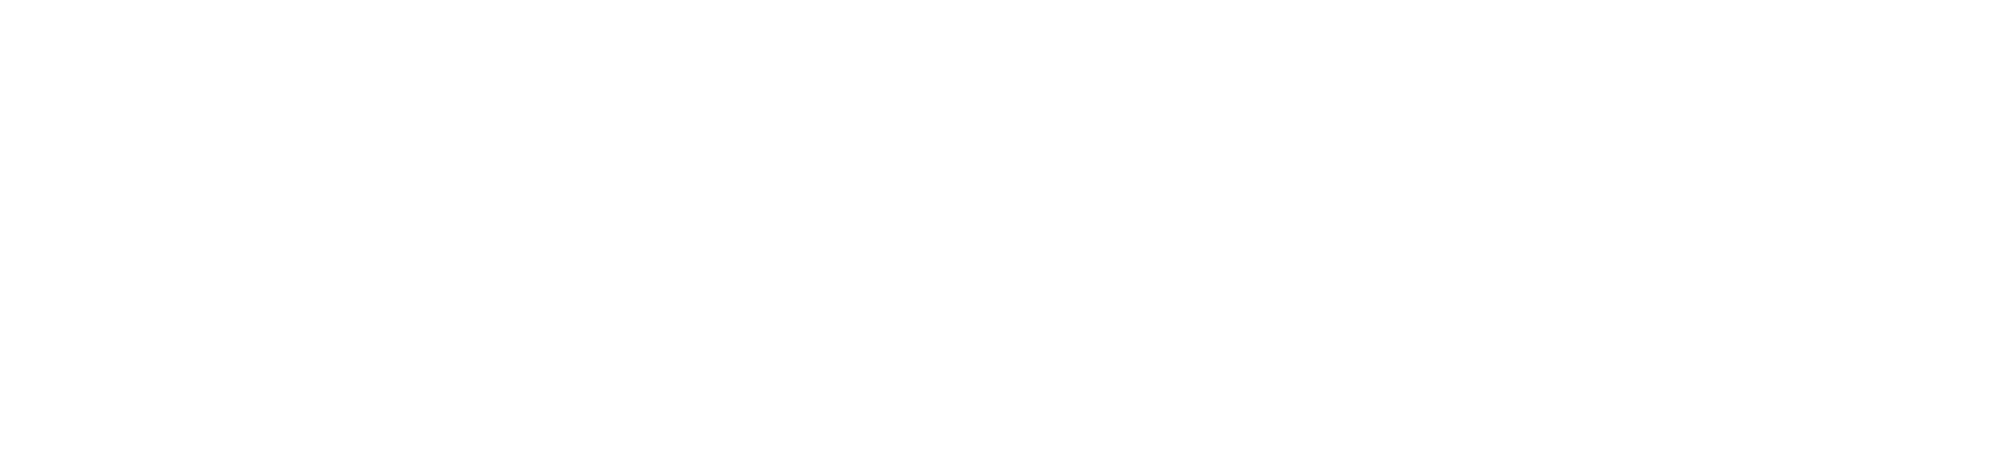 Buhox Wealth